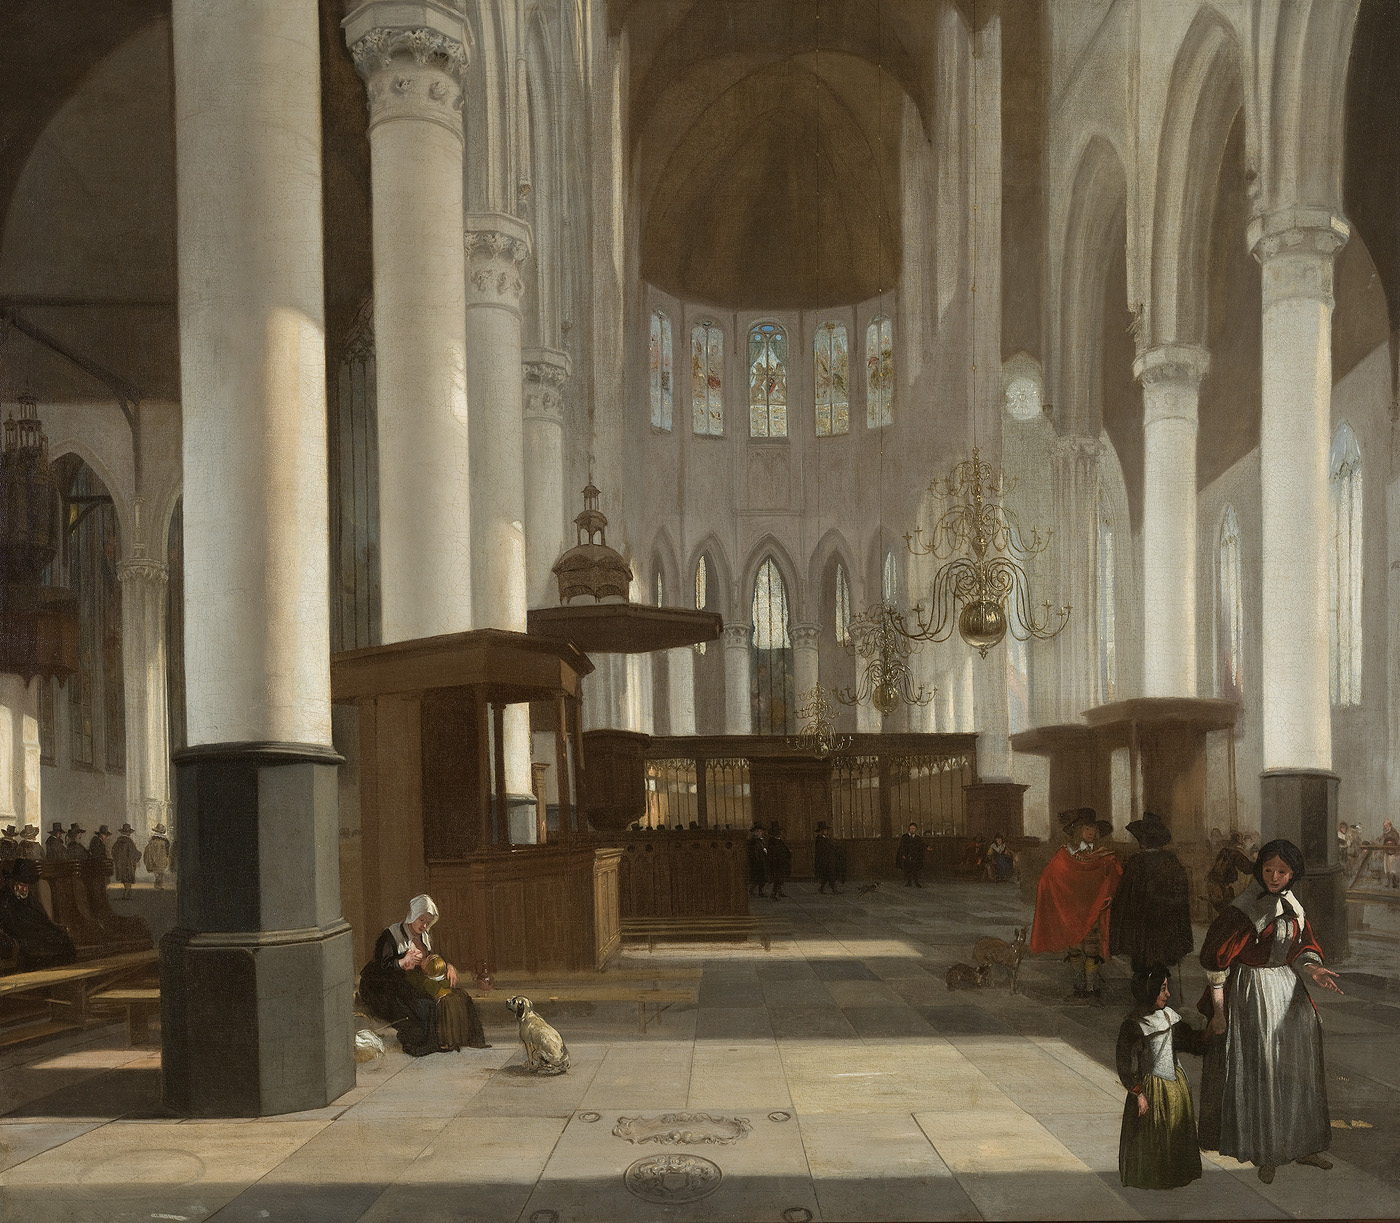 File 385 interieur oude kerk wikimedia commons for Interieur stage amsterdam